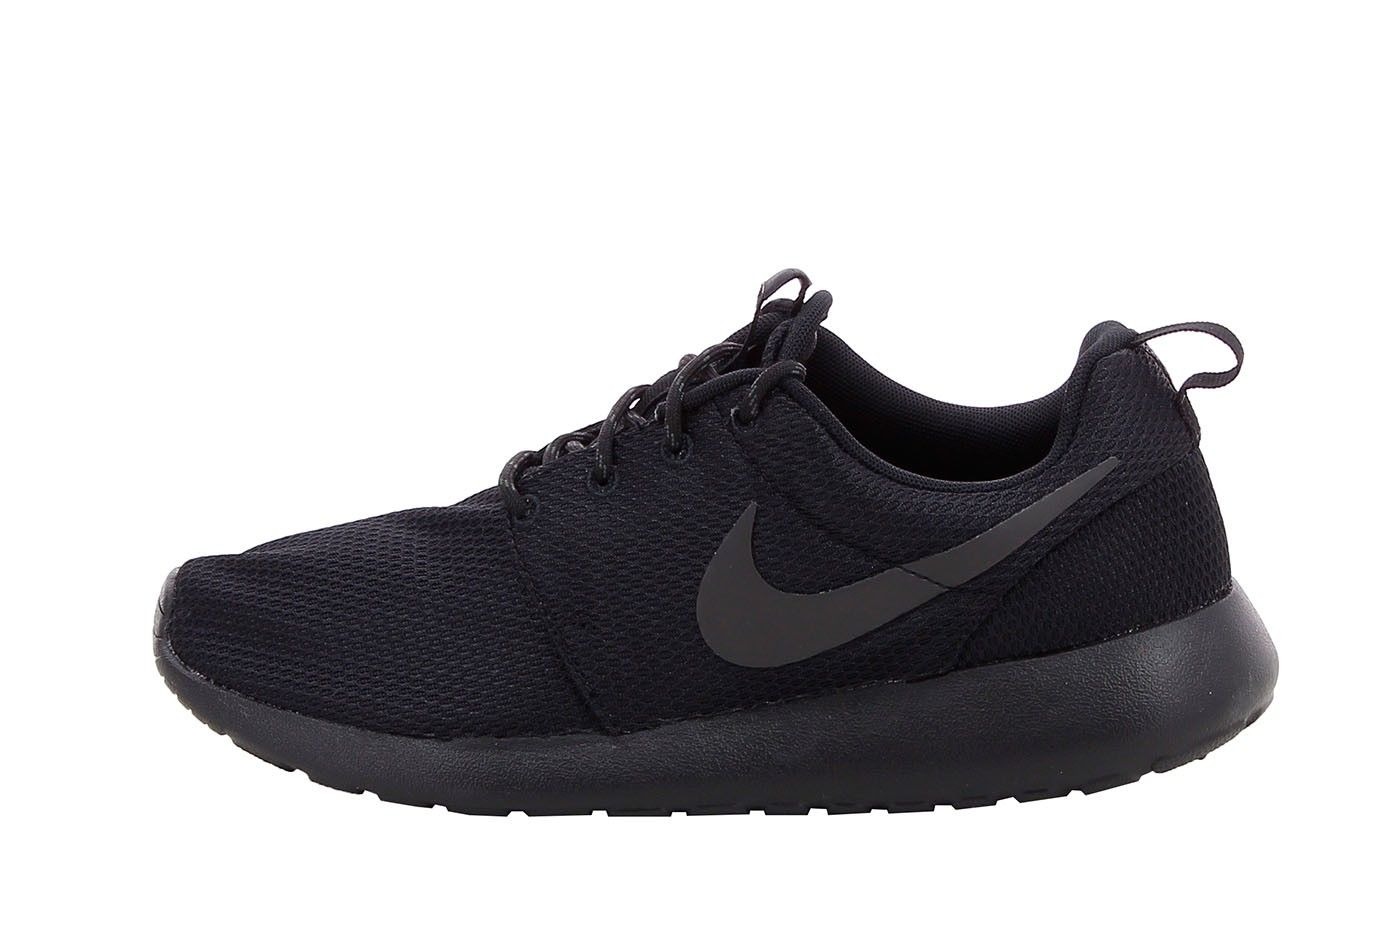 new style 0a88e 75557 Basket Nike Roshe Run - 511882-096 - Pegashoes